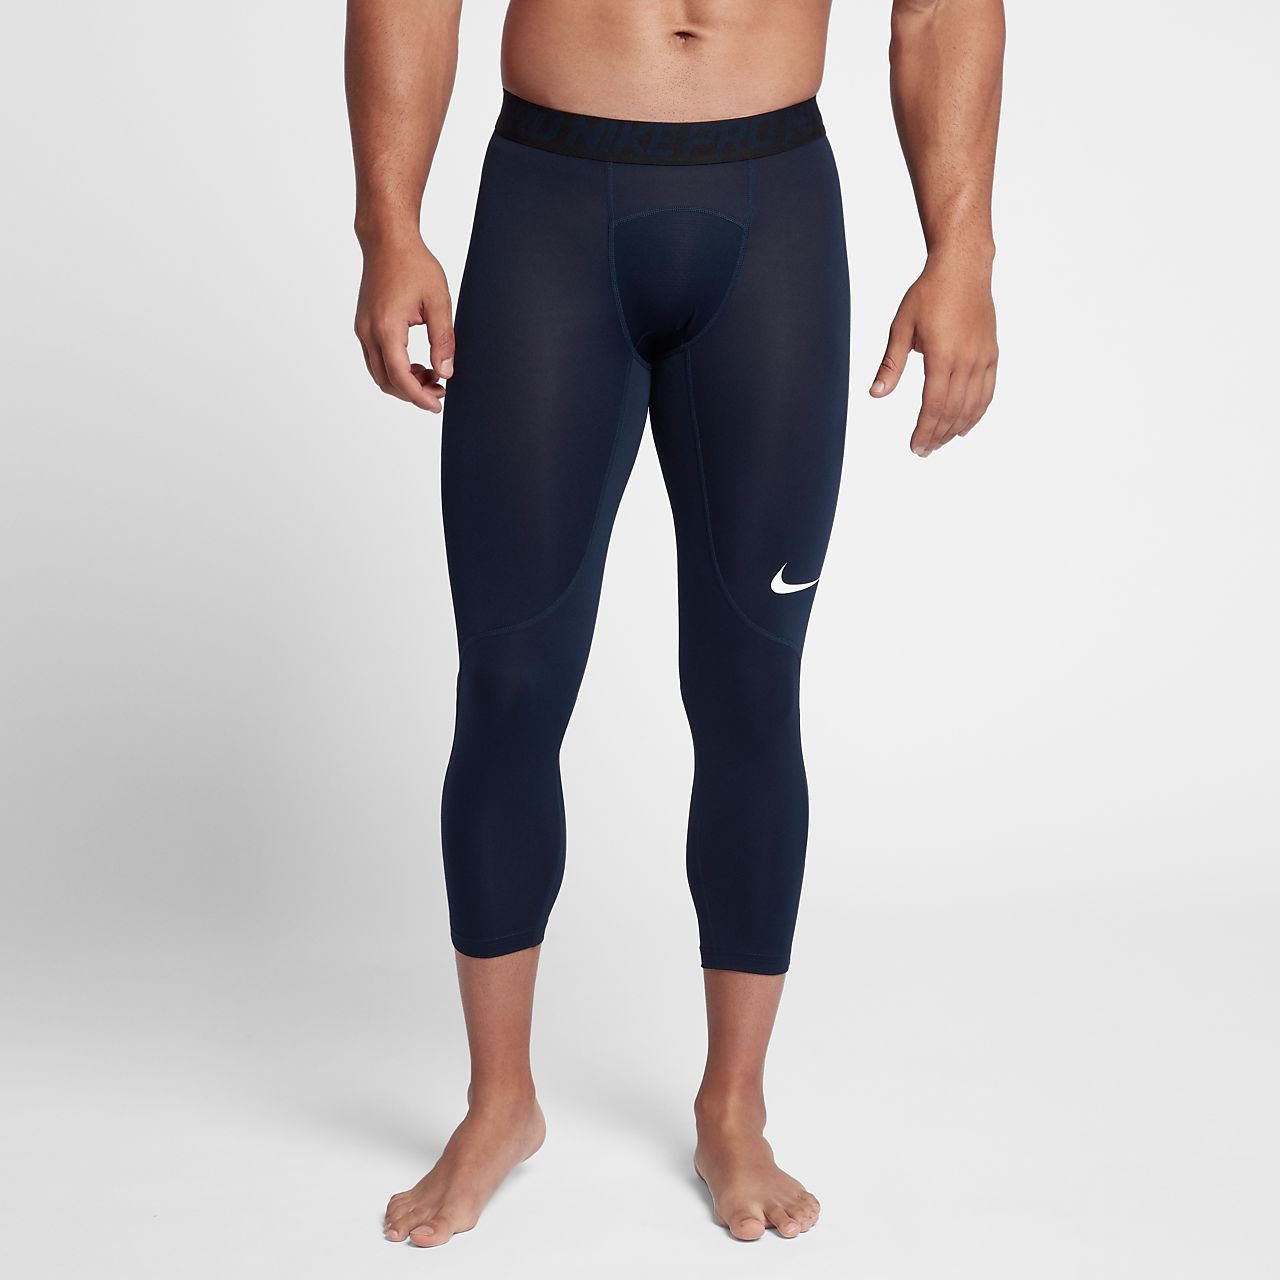 e06a12be8580 Nike Pro Men s 3 4 Training Tights. Nike.com